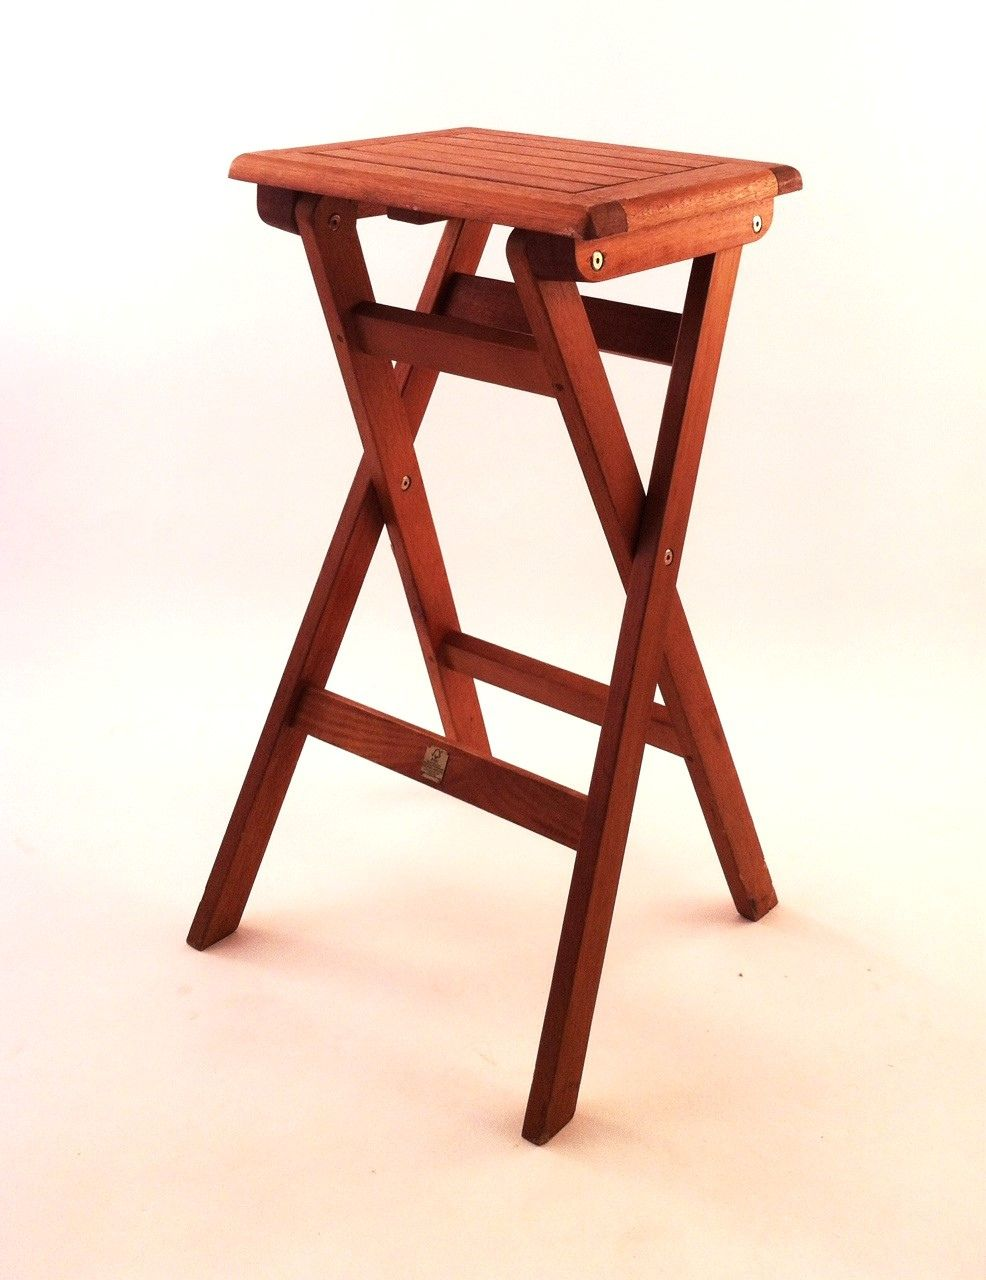 50 Collapsible Bar Stools Modern Vintage Furniture Check More At Http